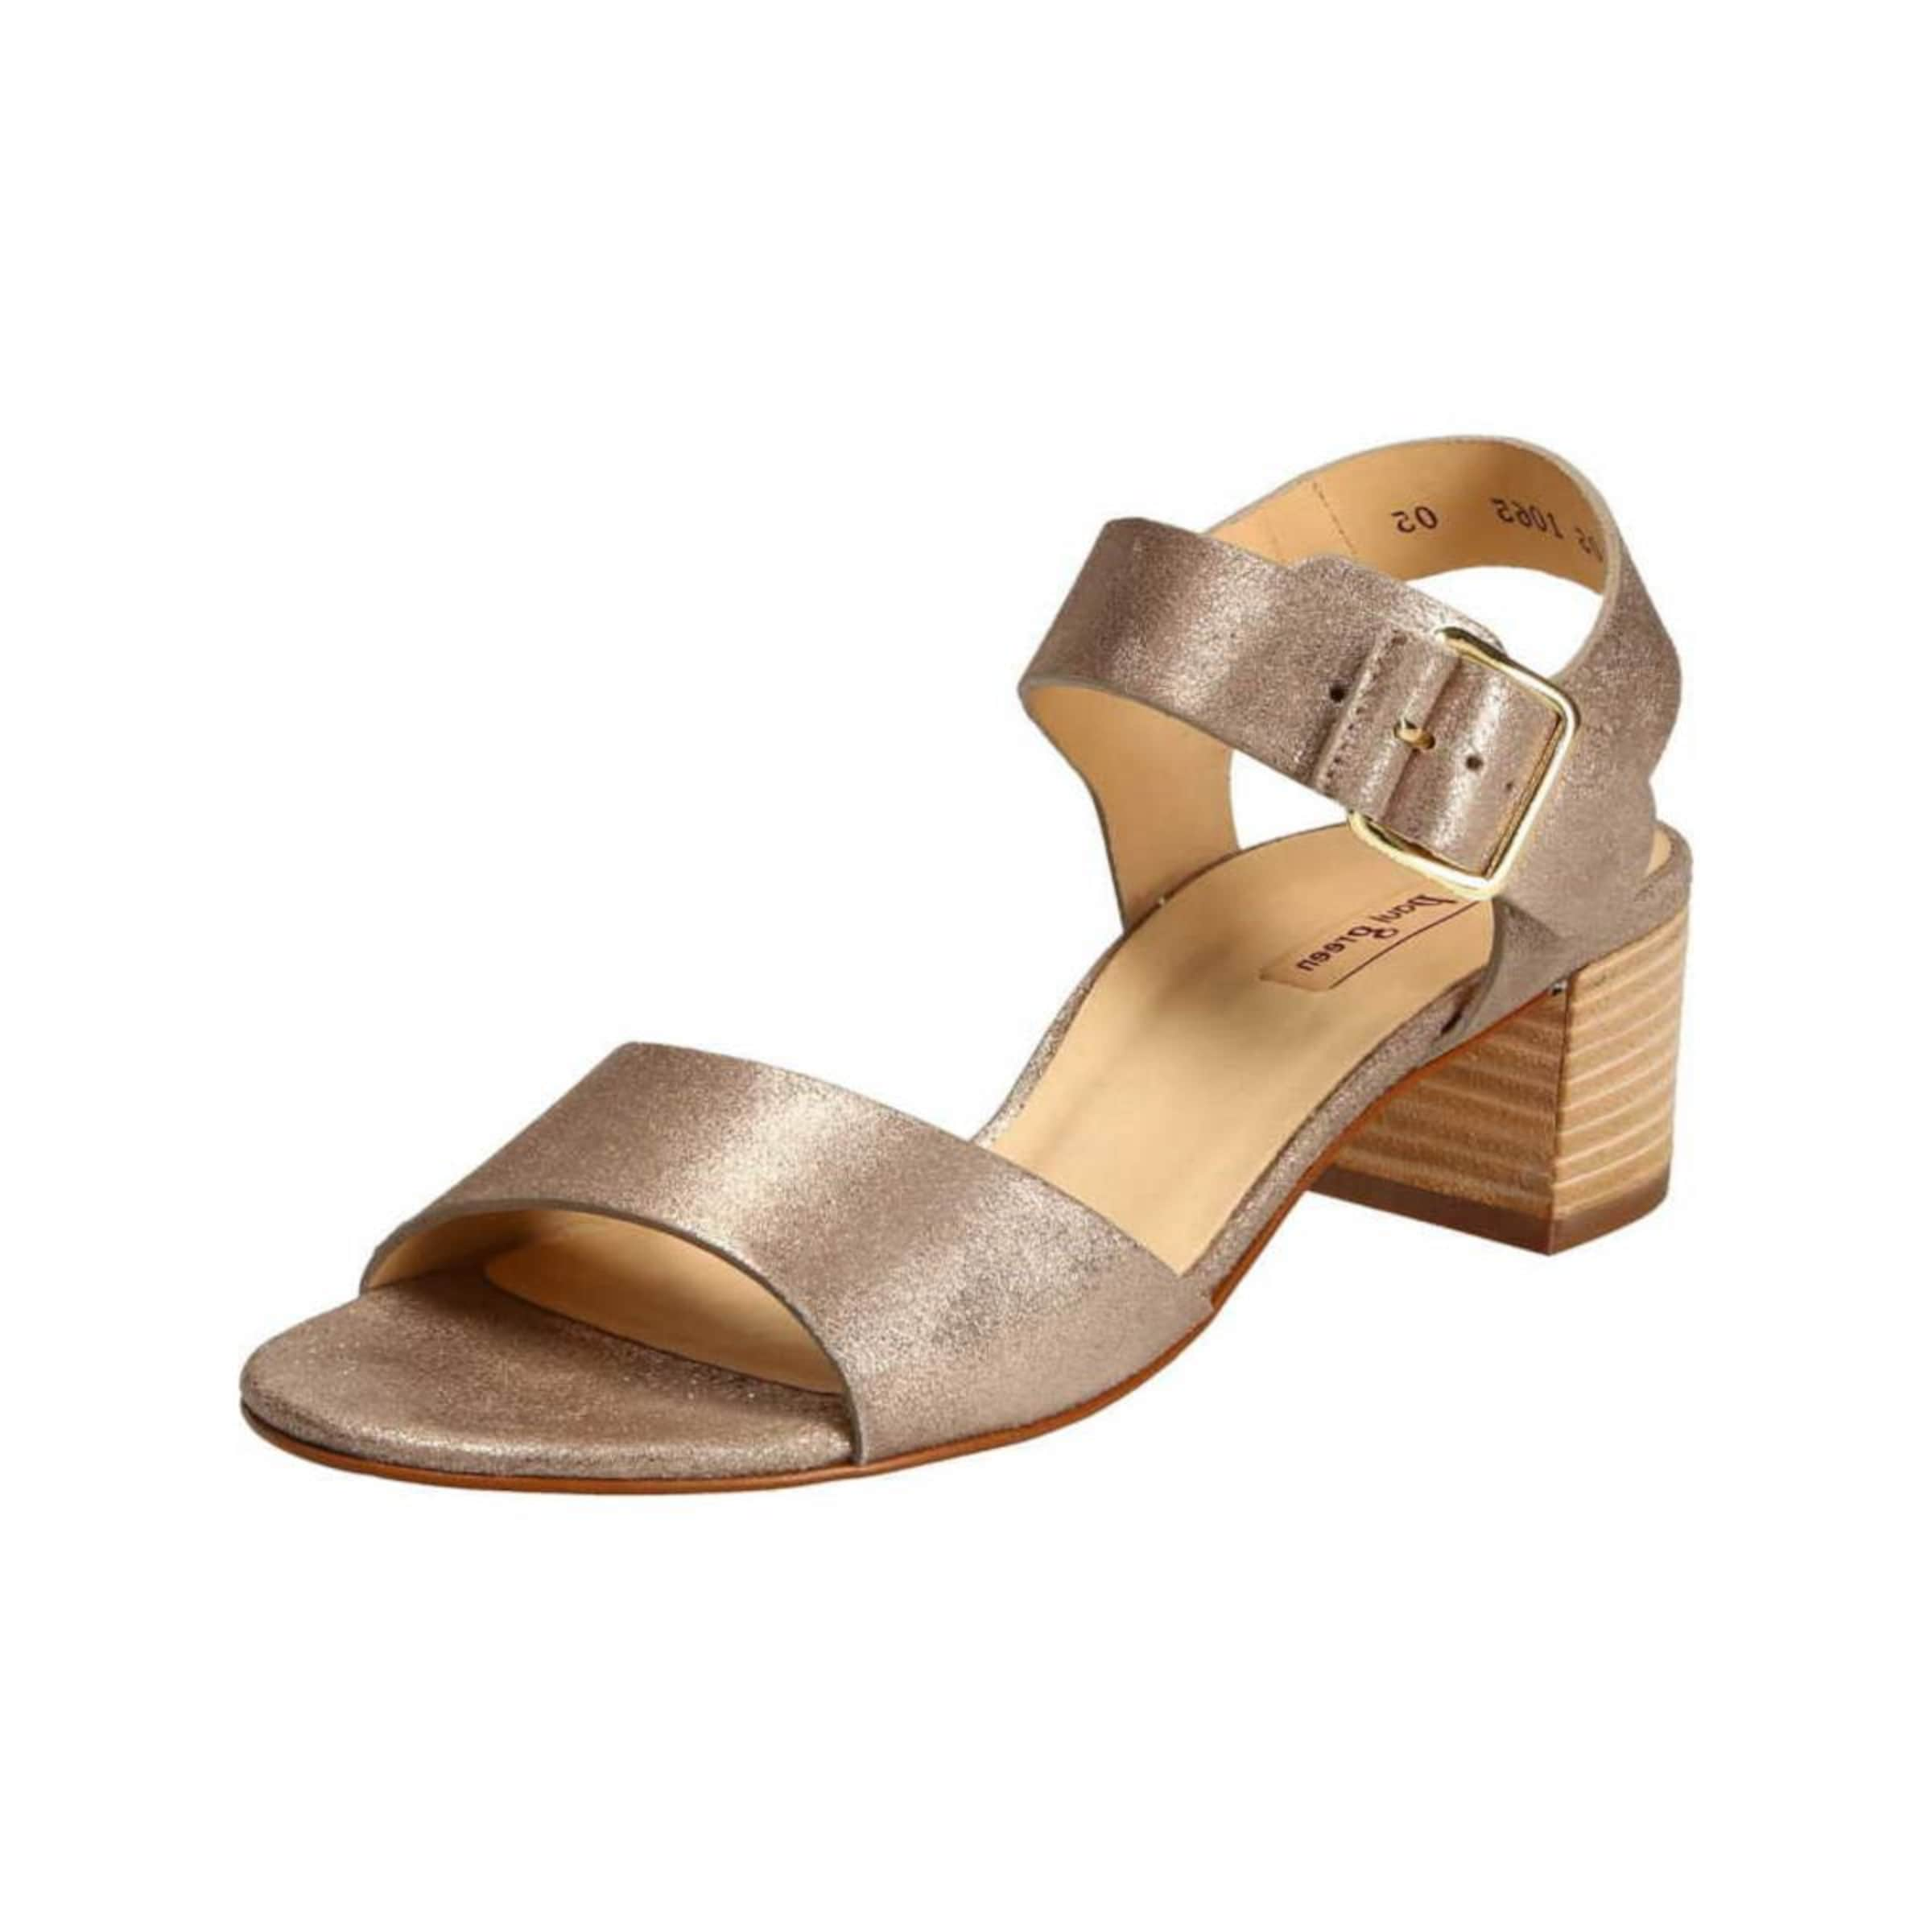 In Paul Taupe Paul In Sandalen Green In Taupe Sandalen Green Green Paul Sandalen m8nwyO0vN